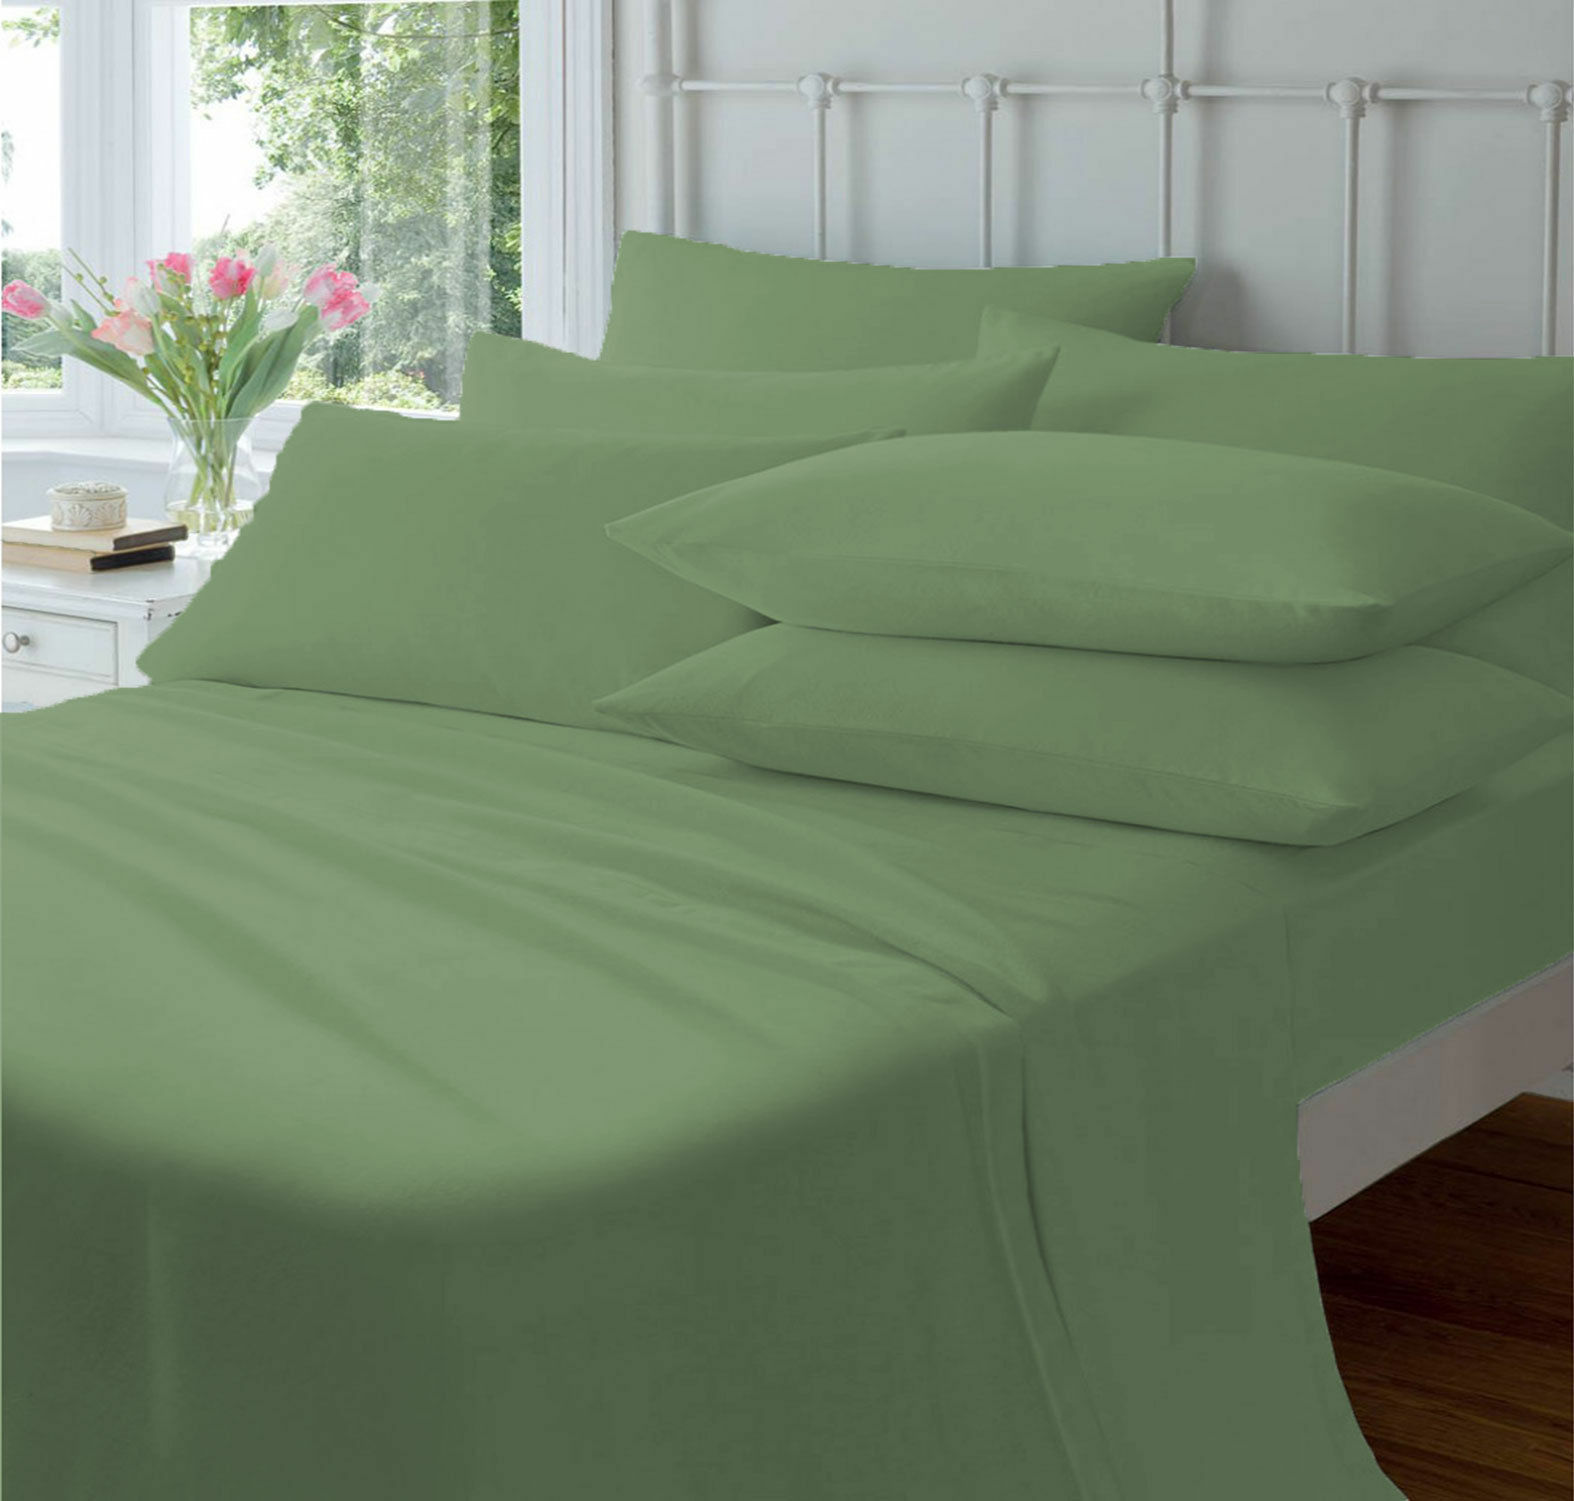 NEW 800 THREAD COUNT BED SHEET SET 100% EGYPTIAN COTTON CAL-KING SIZE MOSS COLOR